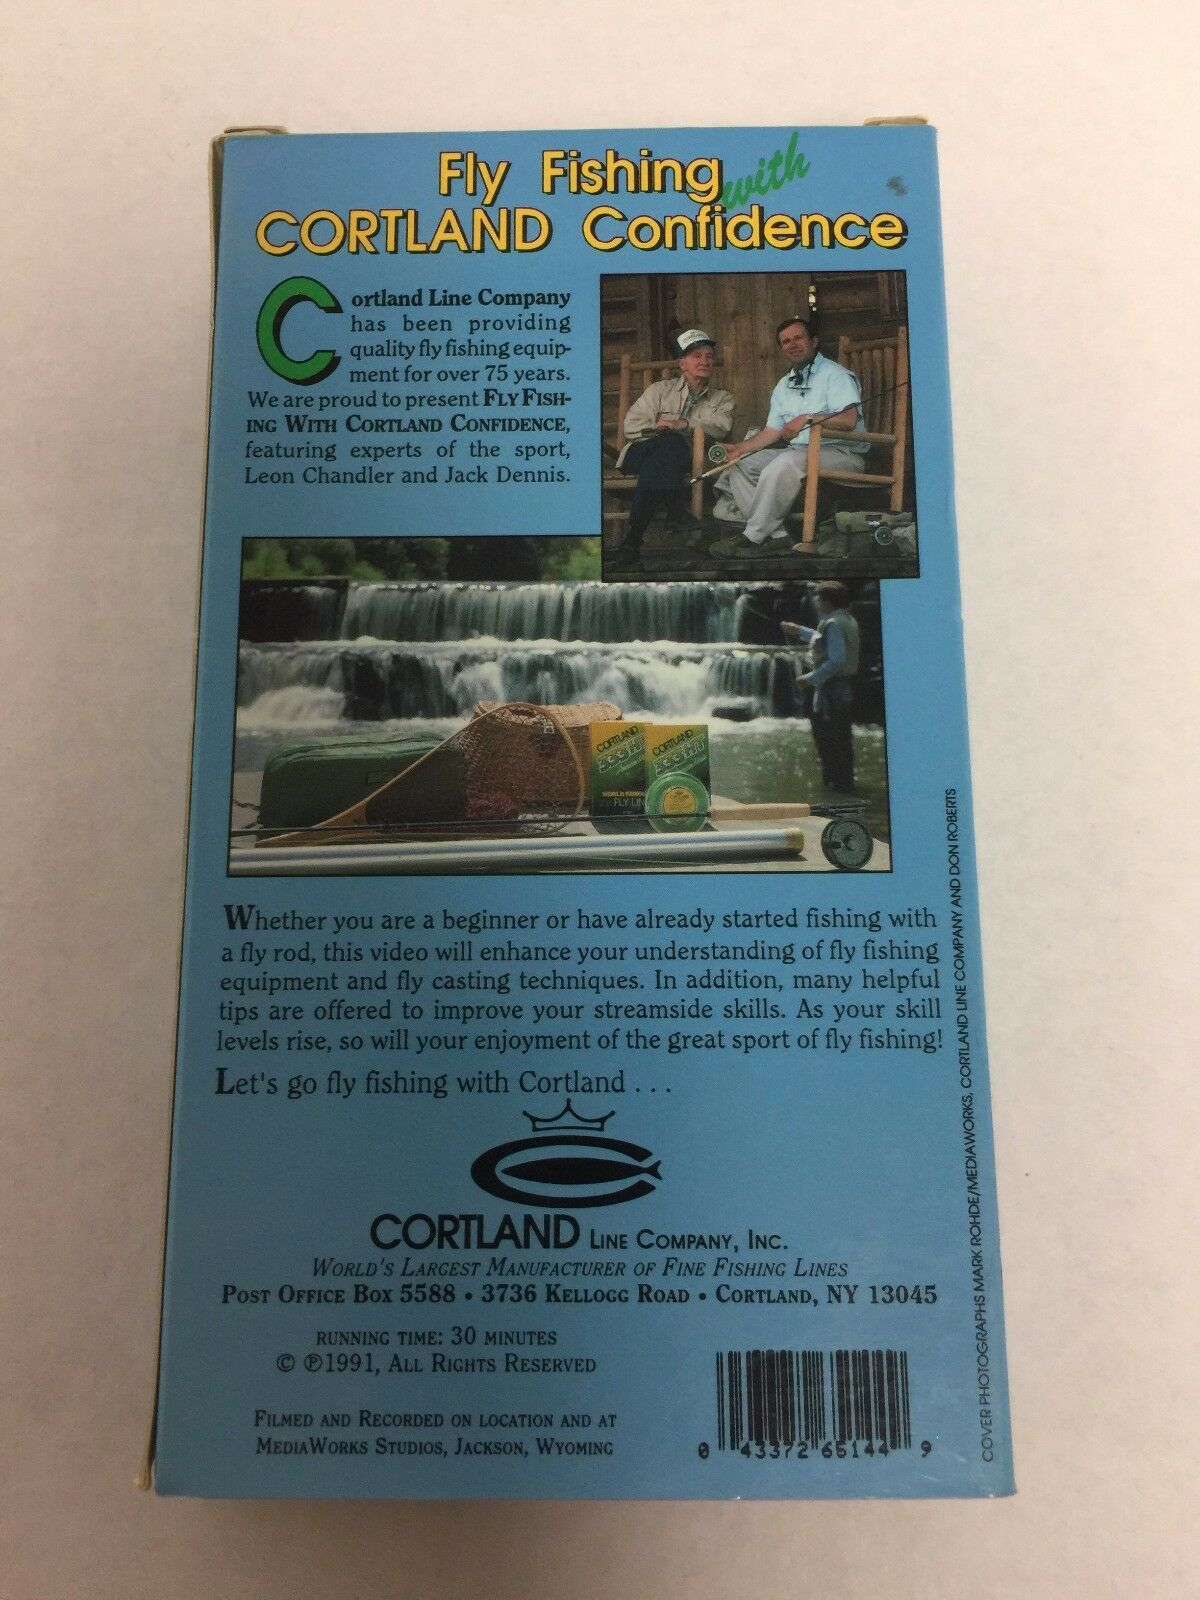 Fly Fishing with Cortland Confidence VHS